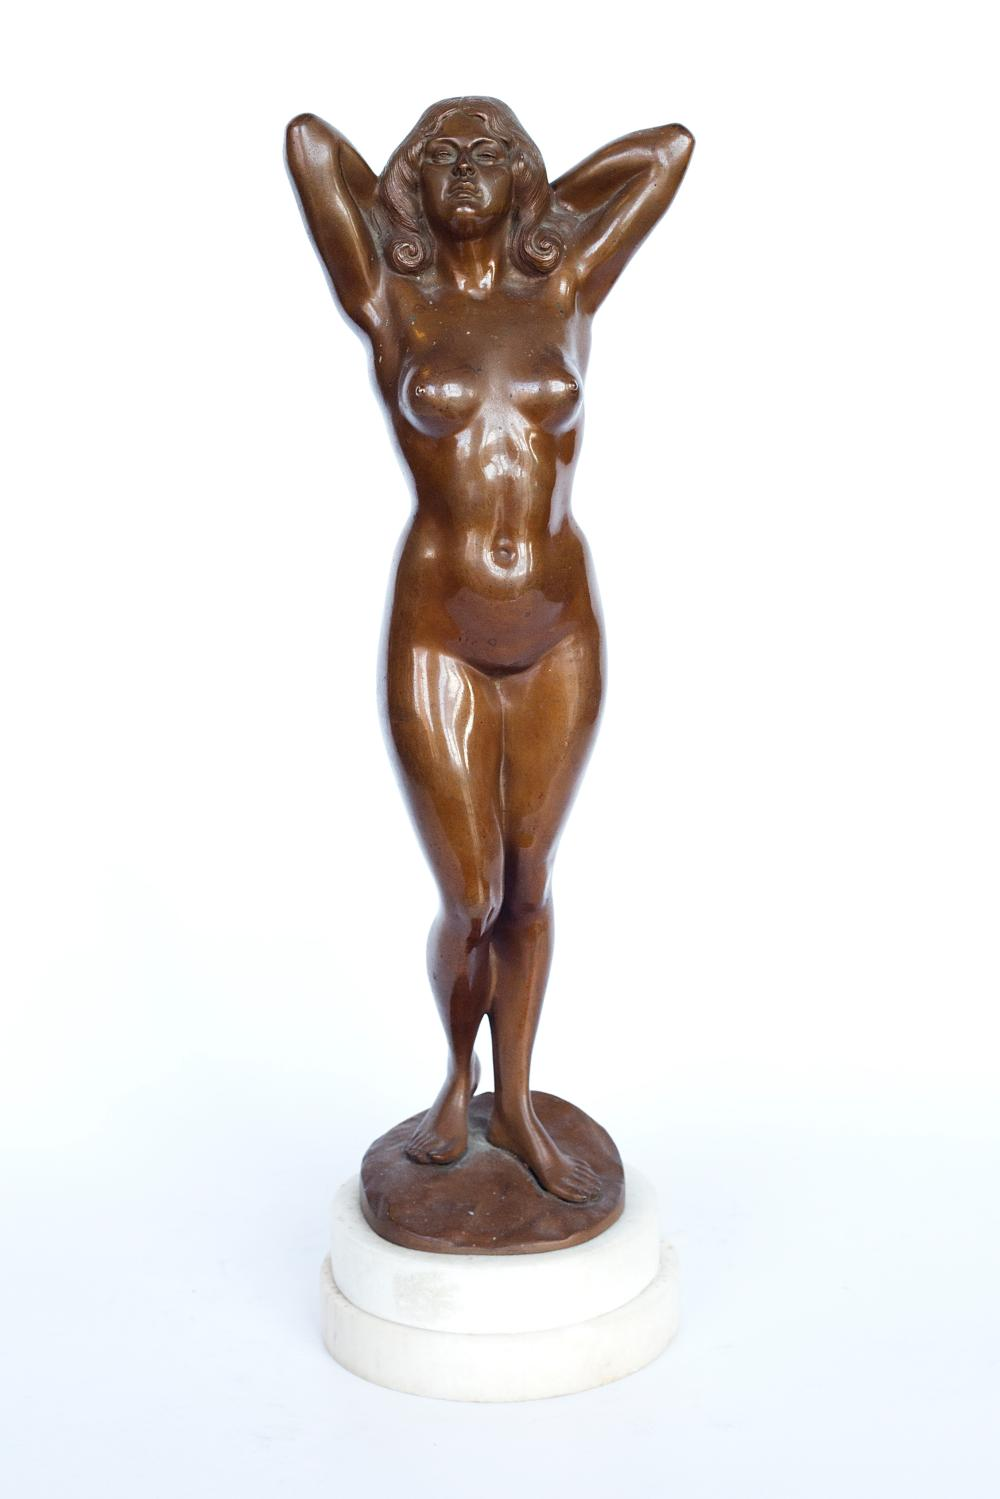 Bronze figure of a nude woman on a marble base signed by Gyula (Julious) Maugsch